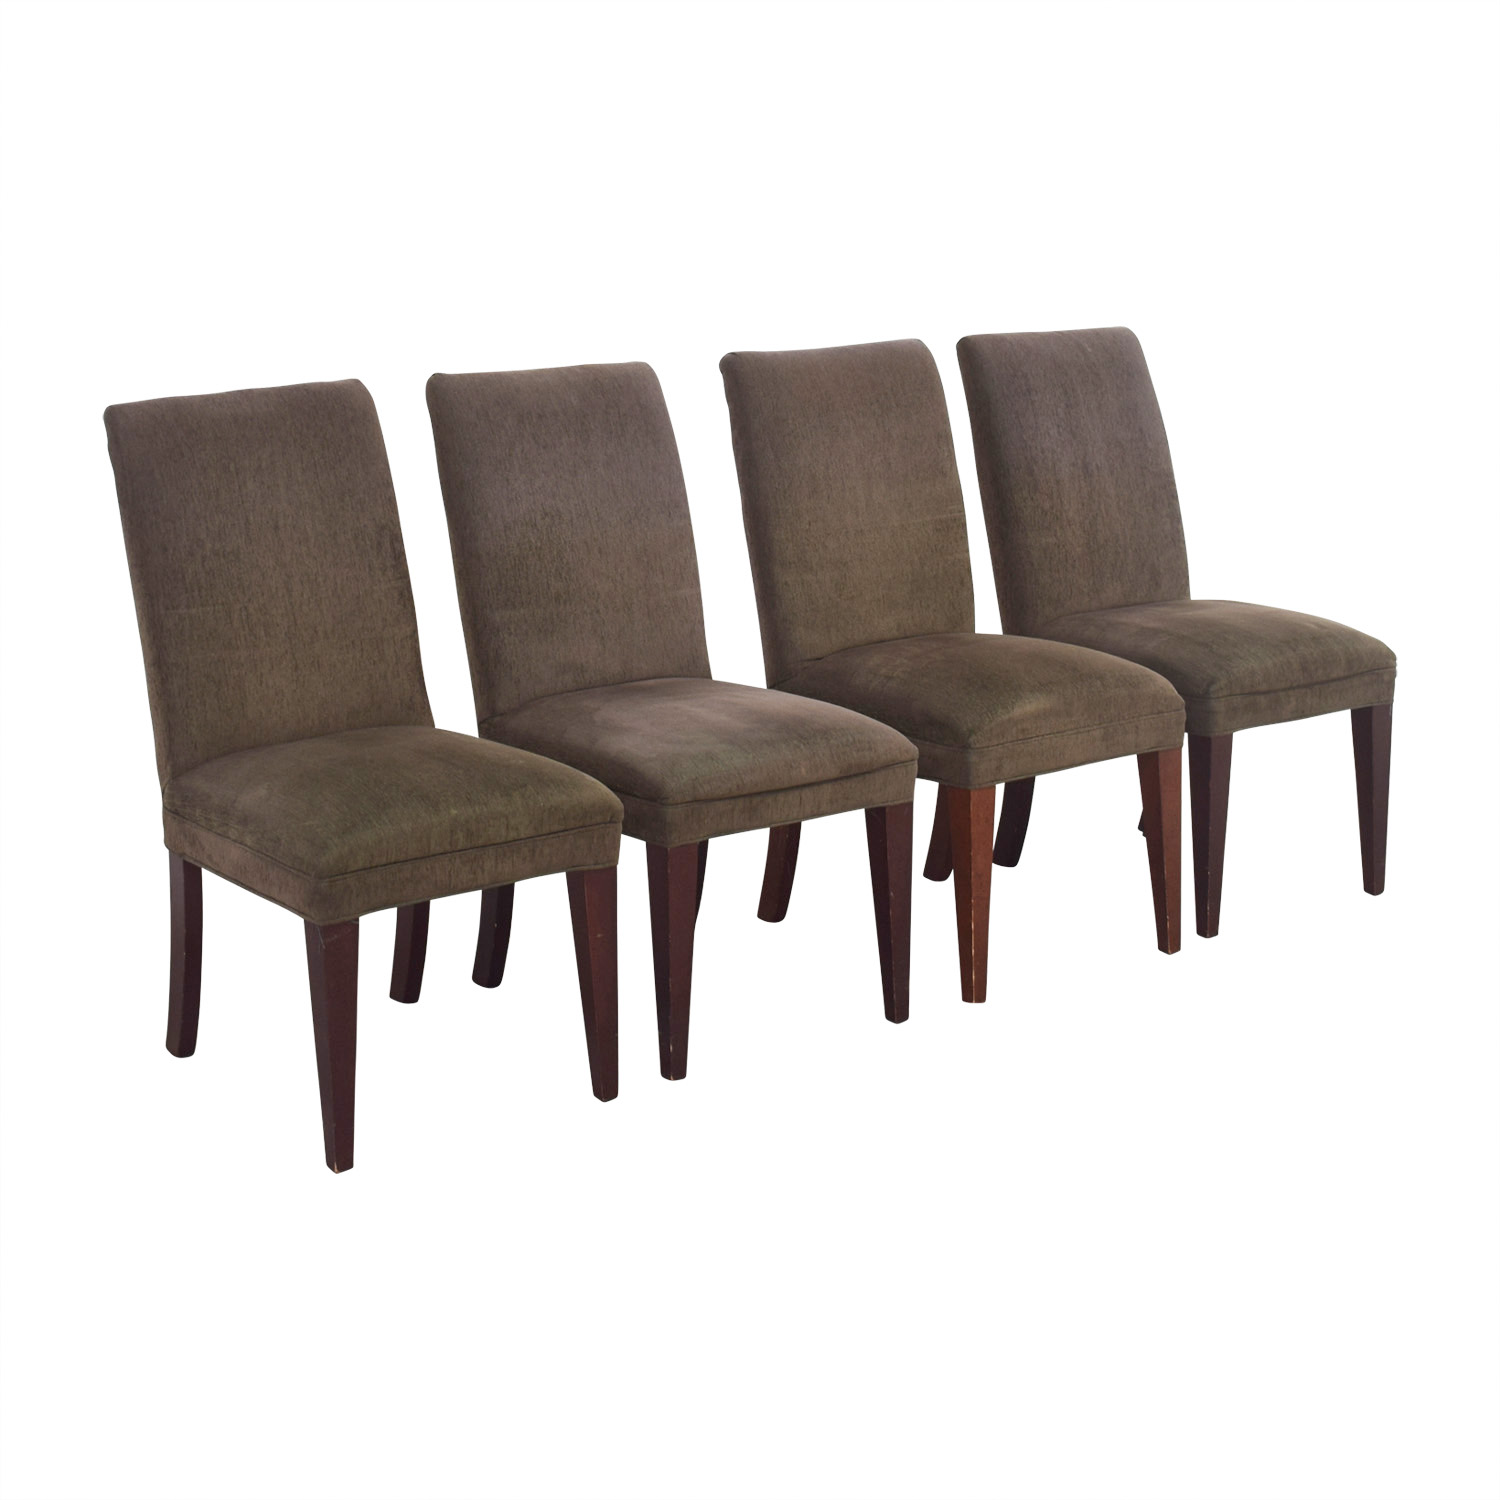 Restoration Hardware Olive Green Dining Chairs Nyc